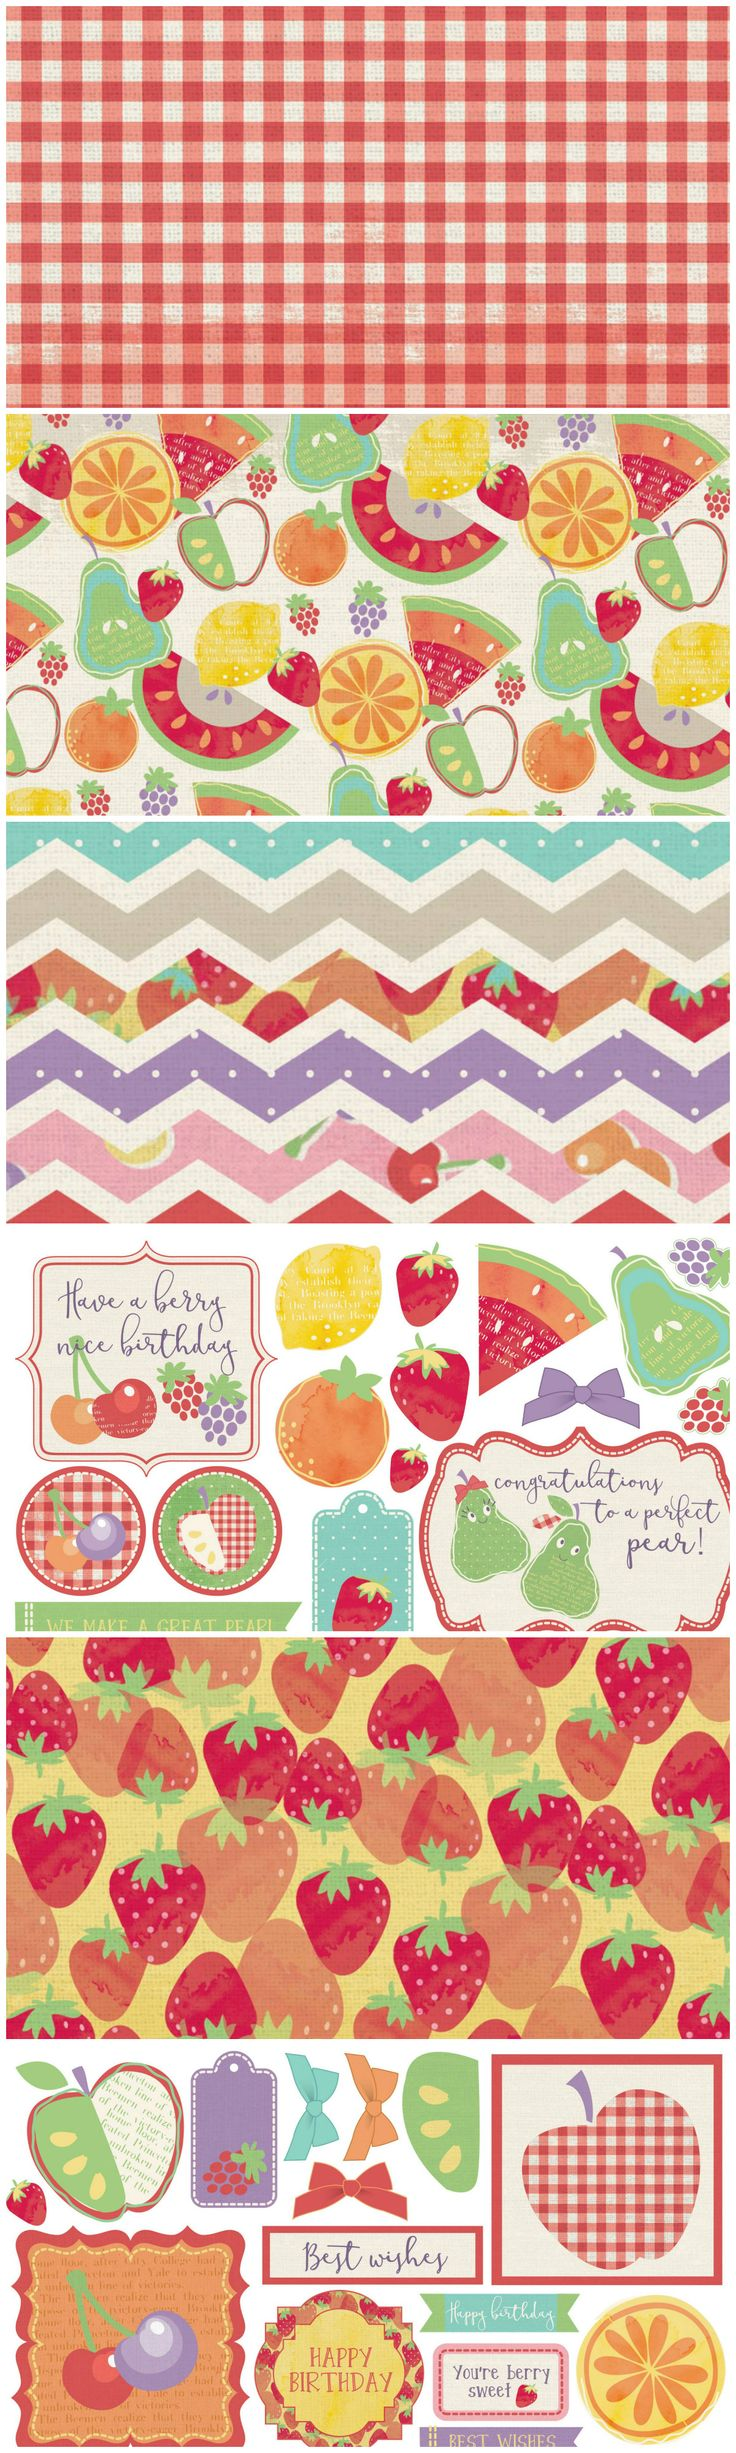 Make fruity summer cards with these Fruit Salad free digital papers – download them from the Papercraft Inspirations website!